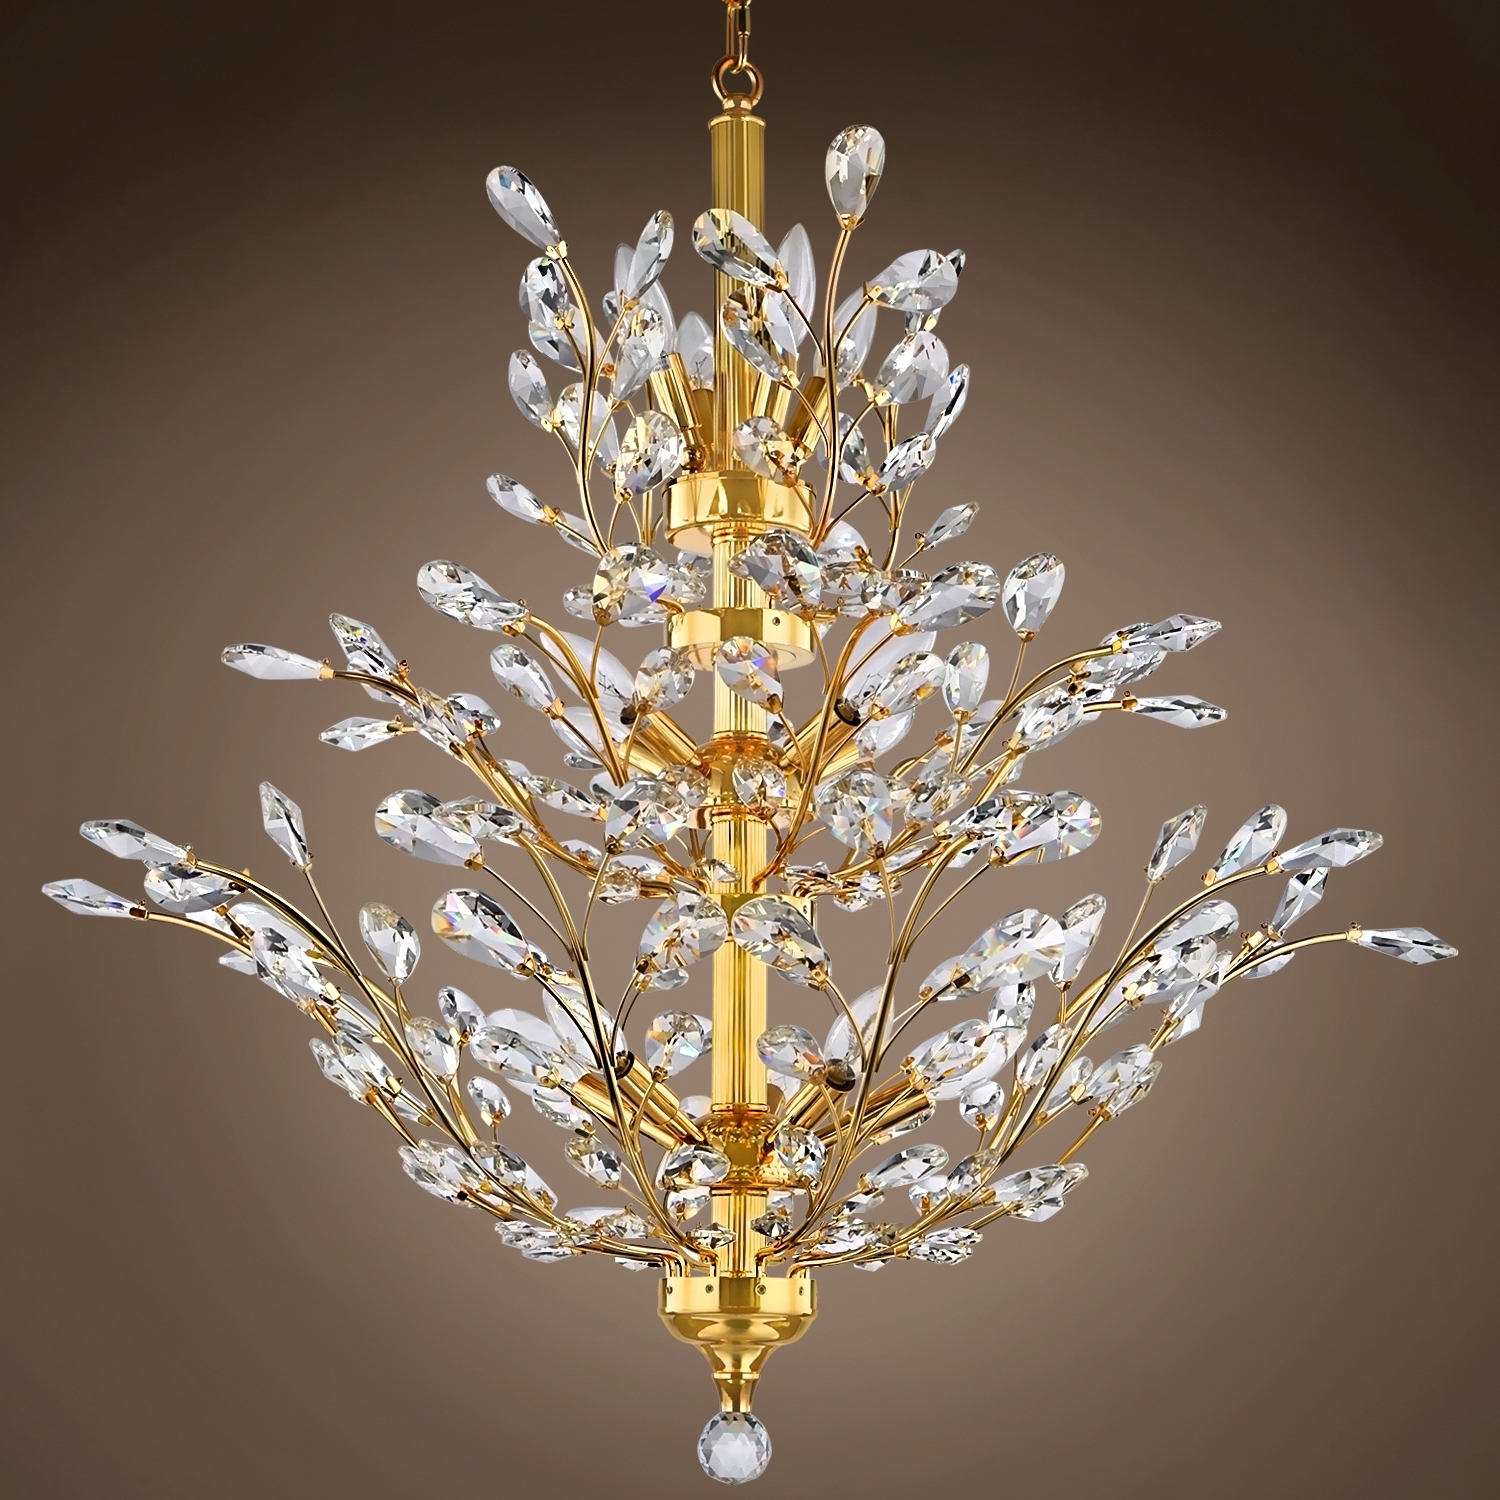 Branch Crystal Chandelier for Popular Joshua Marshal 700861 Branch Of Light 10 Light Gold Chandelier With